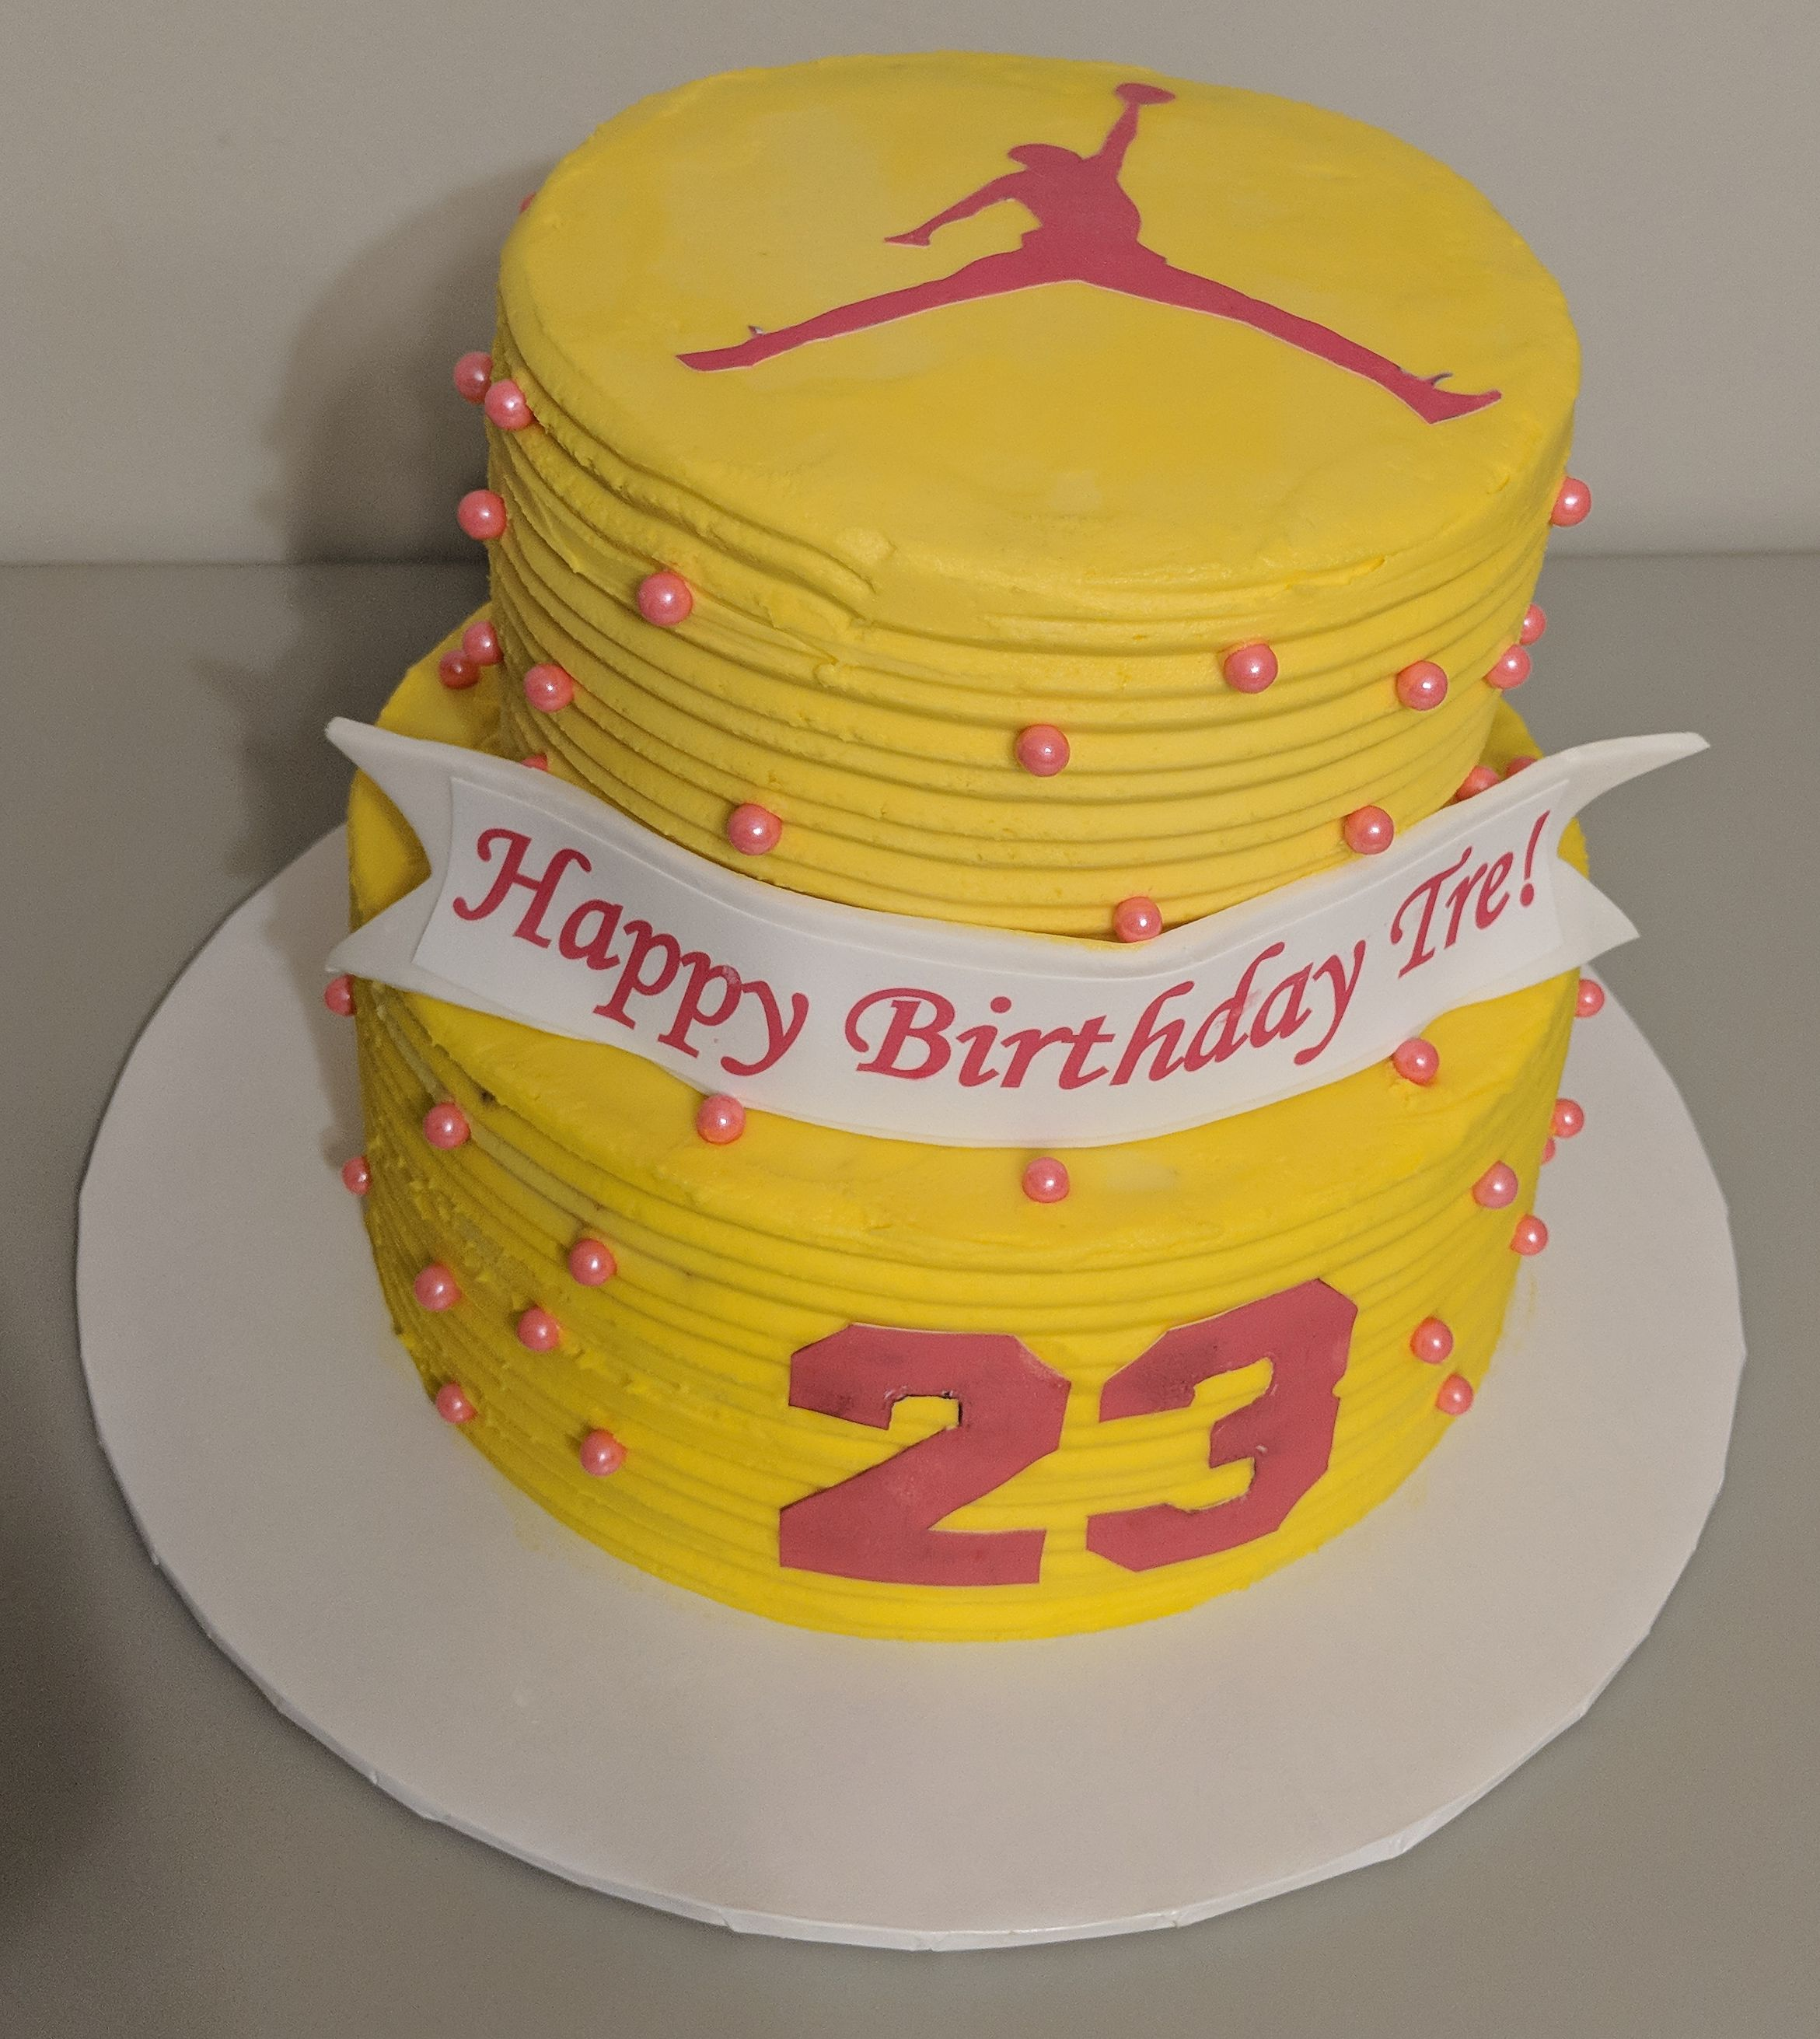 Jordan Birthday Cake